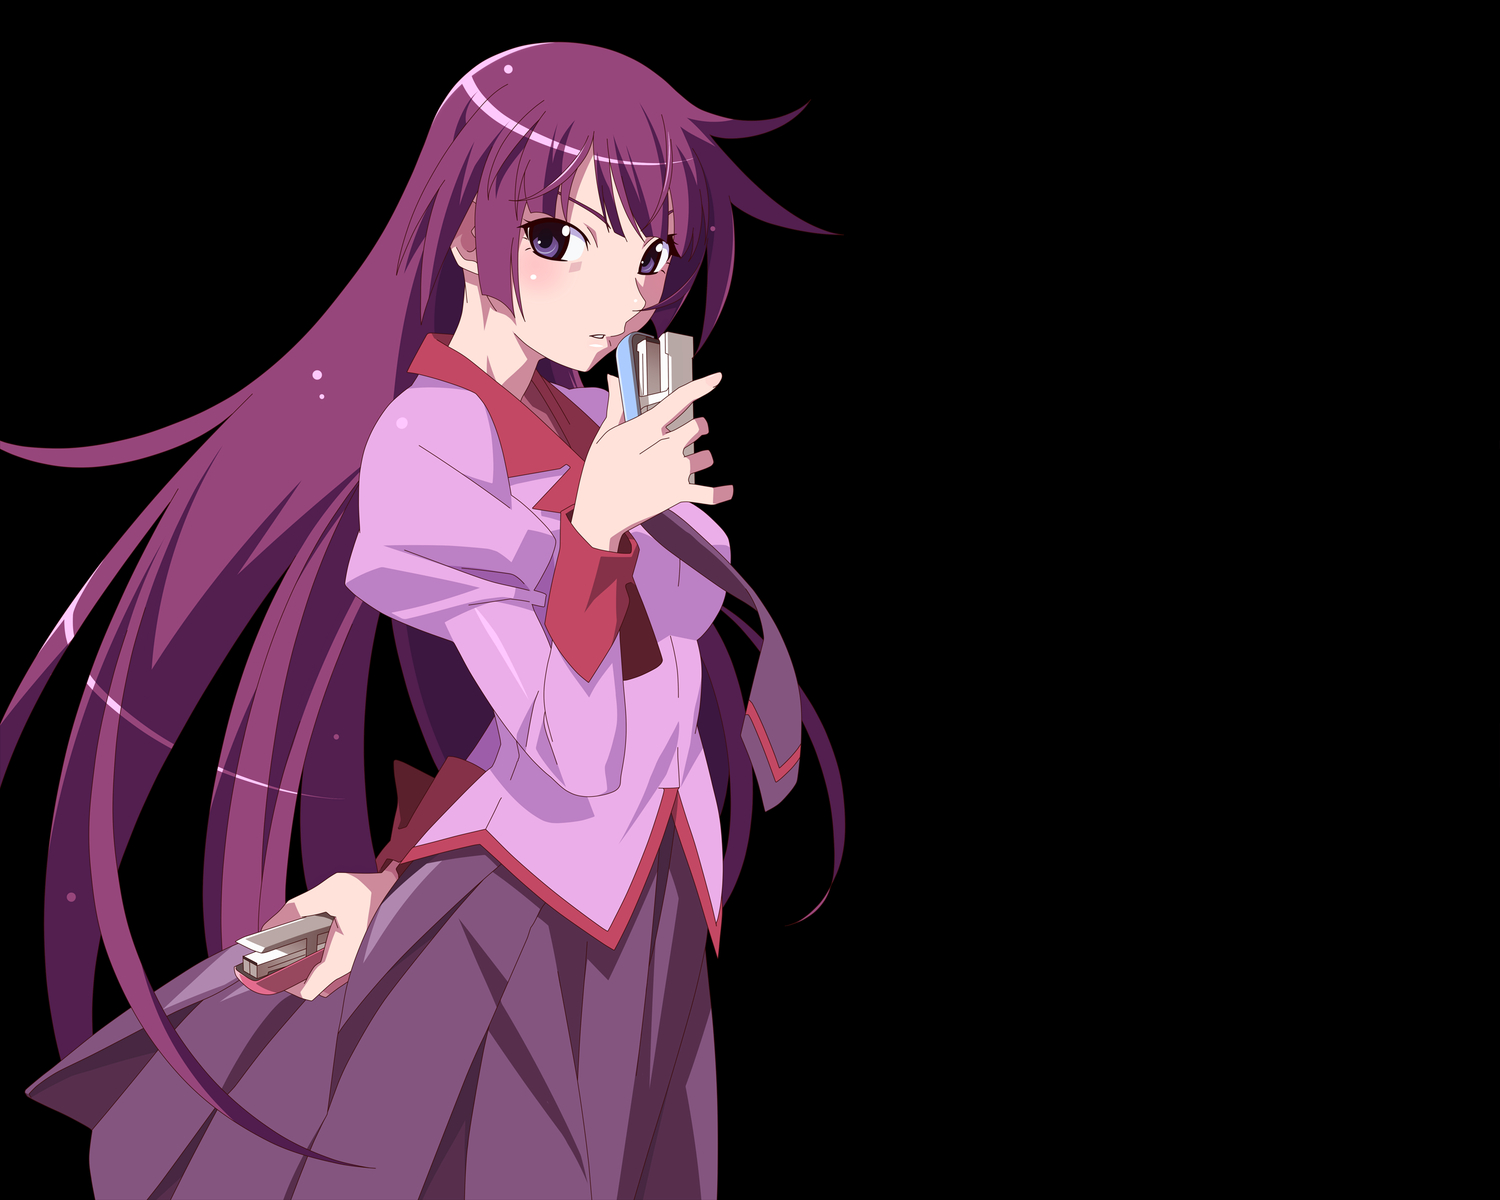 bakemonogatari long_hair monogatari_(series) purple_hair seifuku senjougahara_hitagi transparent vector